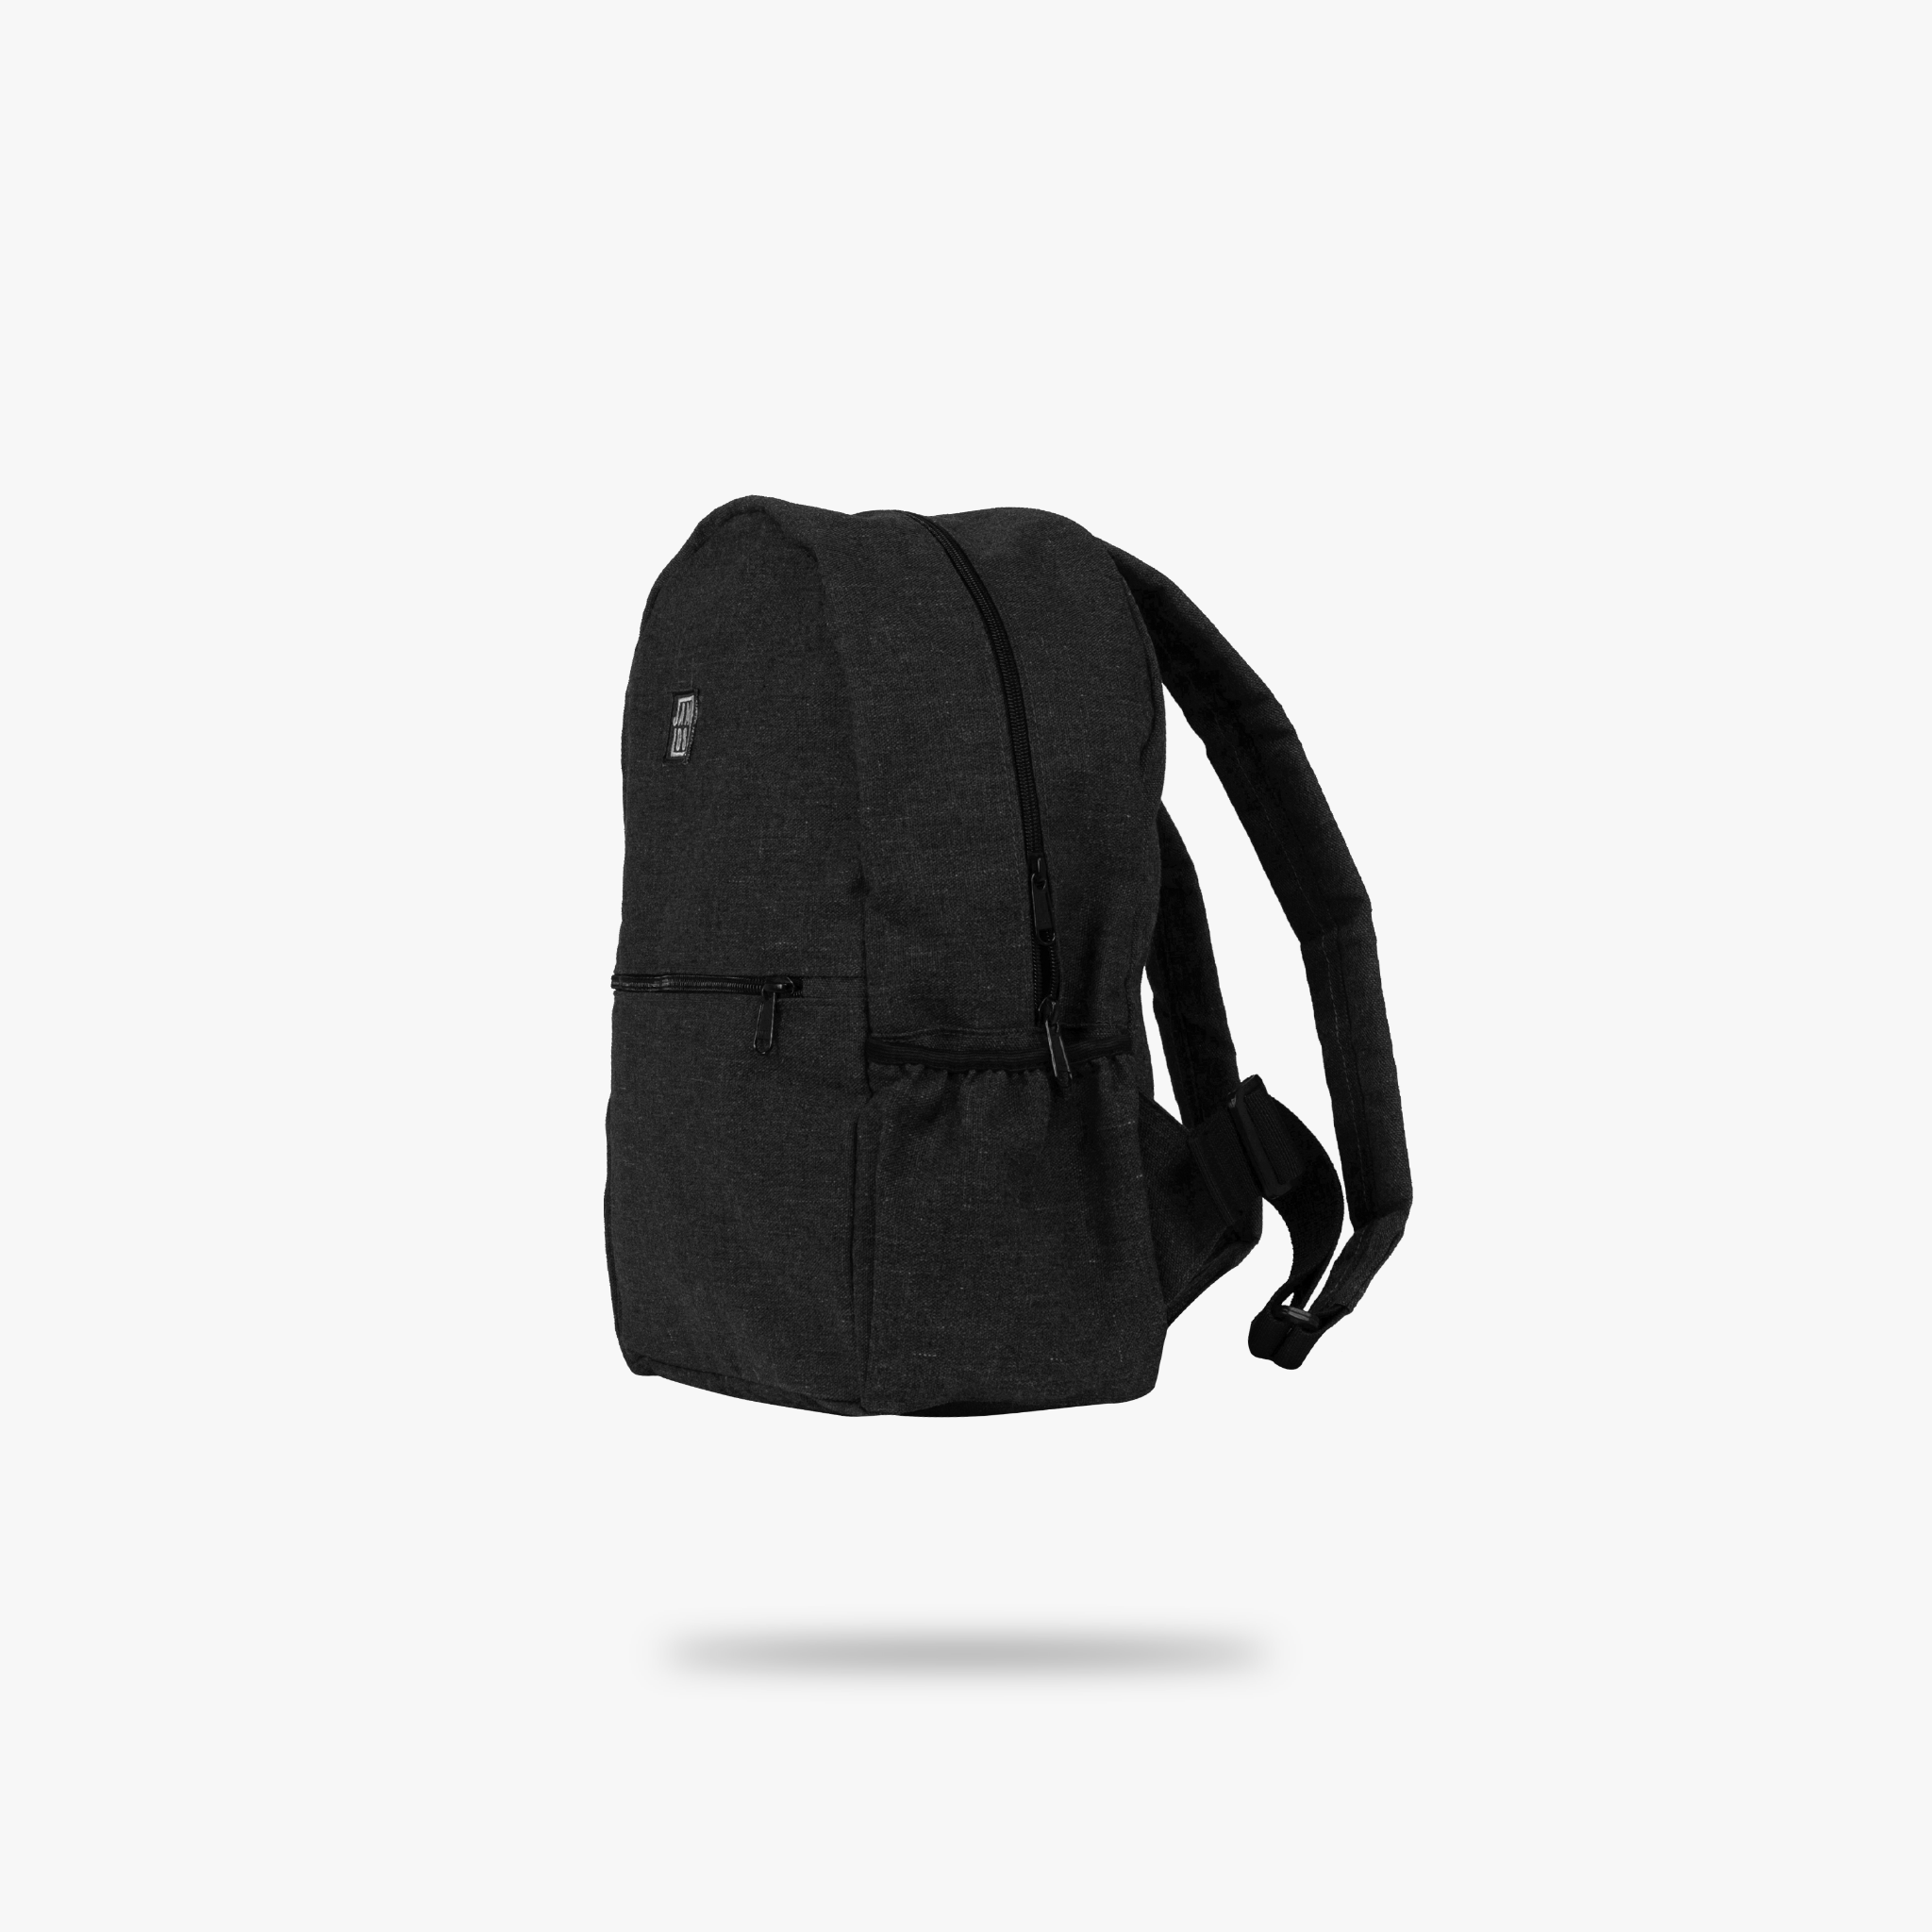 BASIC BACKPACK - Olive